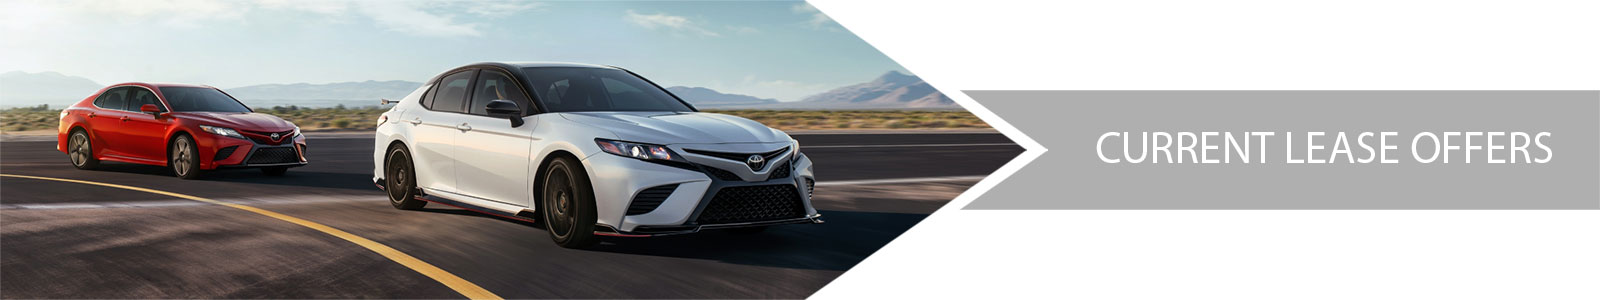 Centennial Toyota Current Lease Offers